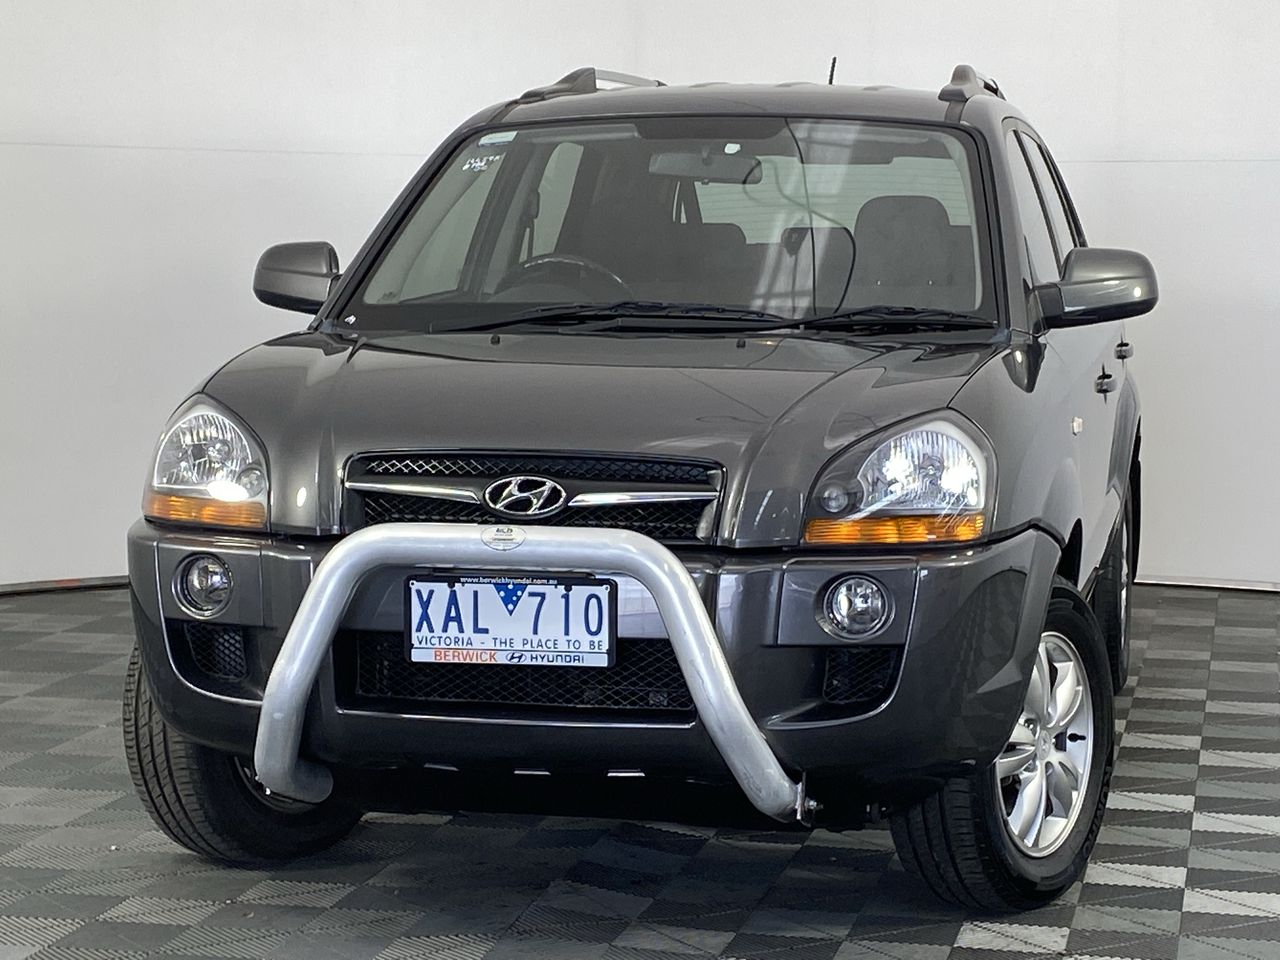 2009 Hyundai Tucson CITY SX Automatic Wagon